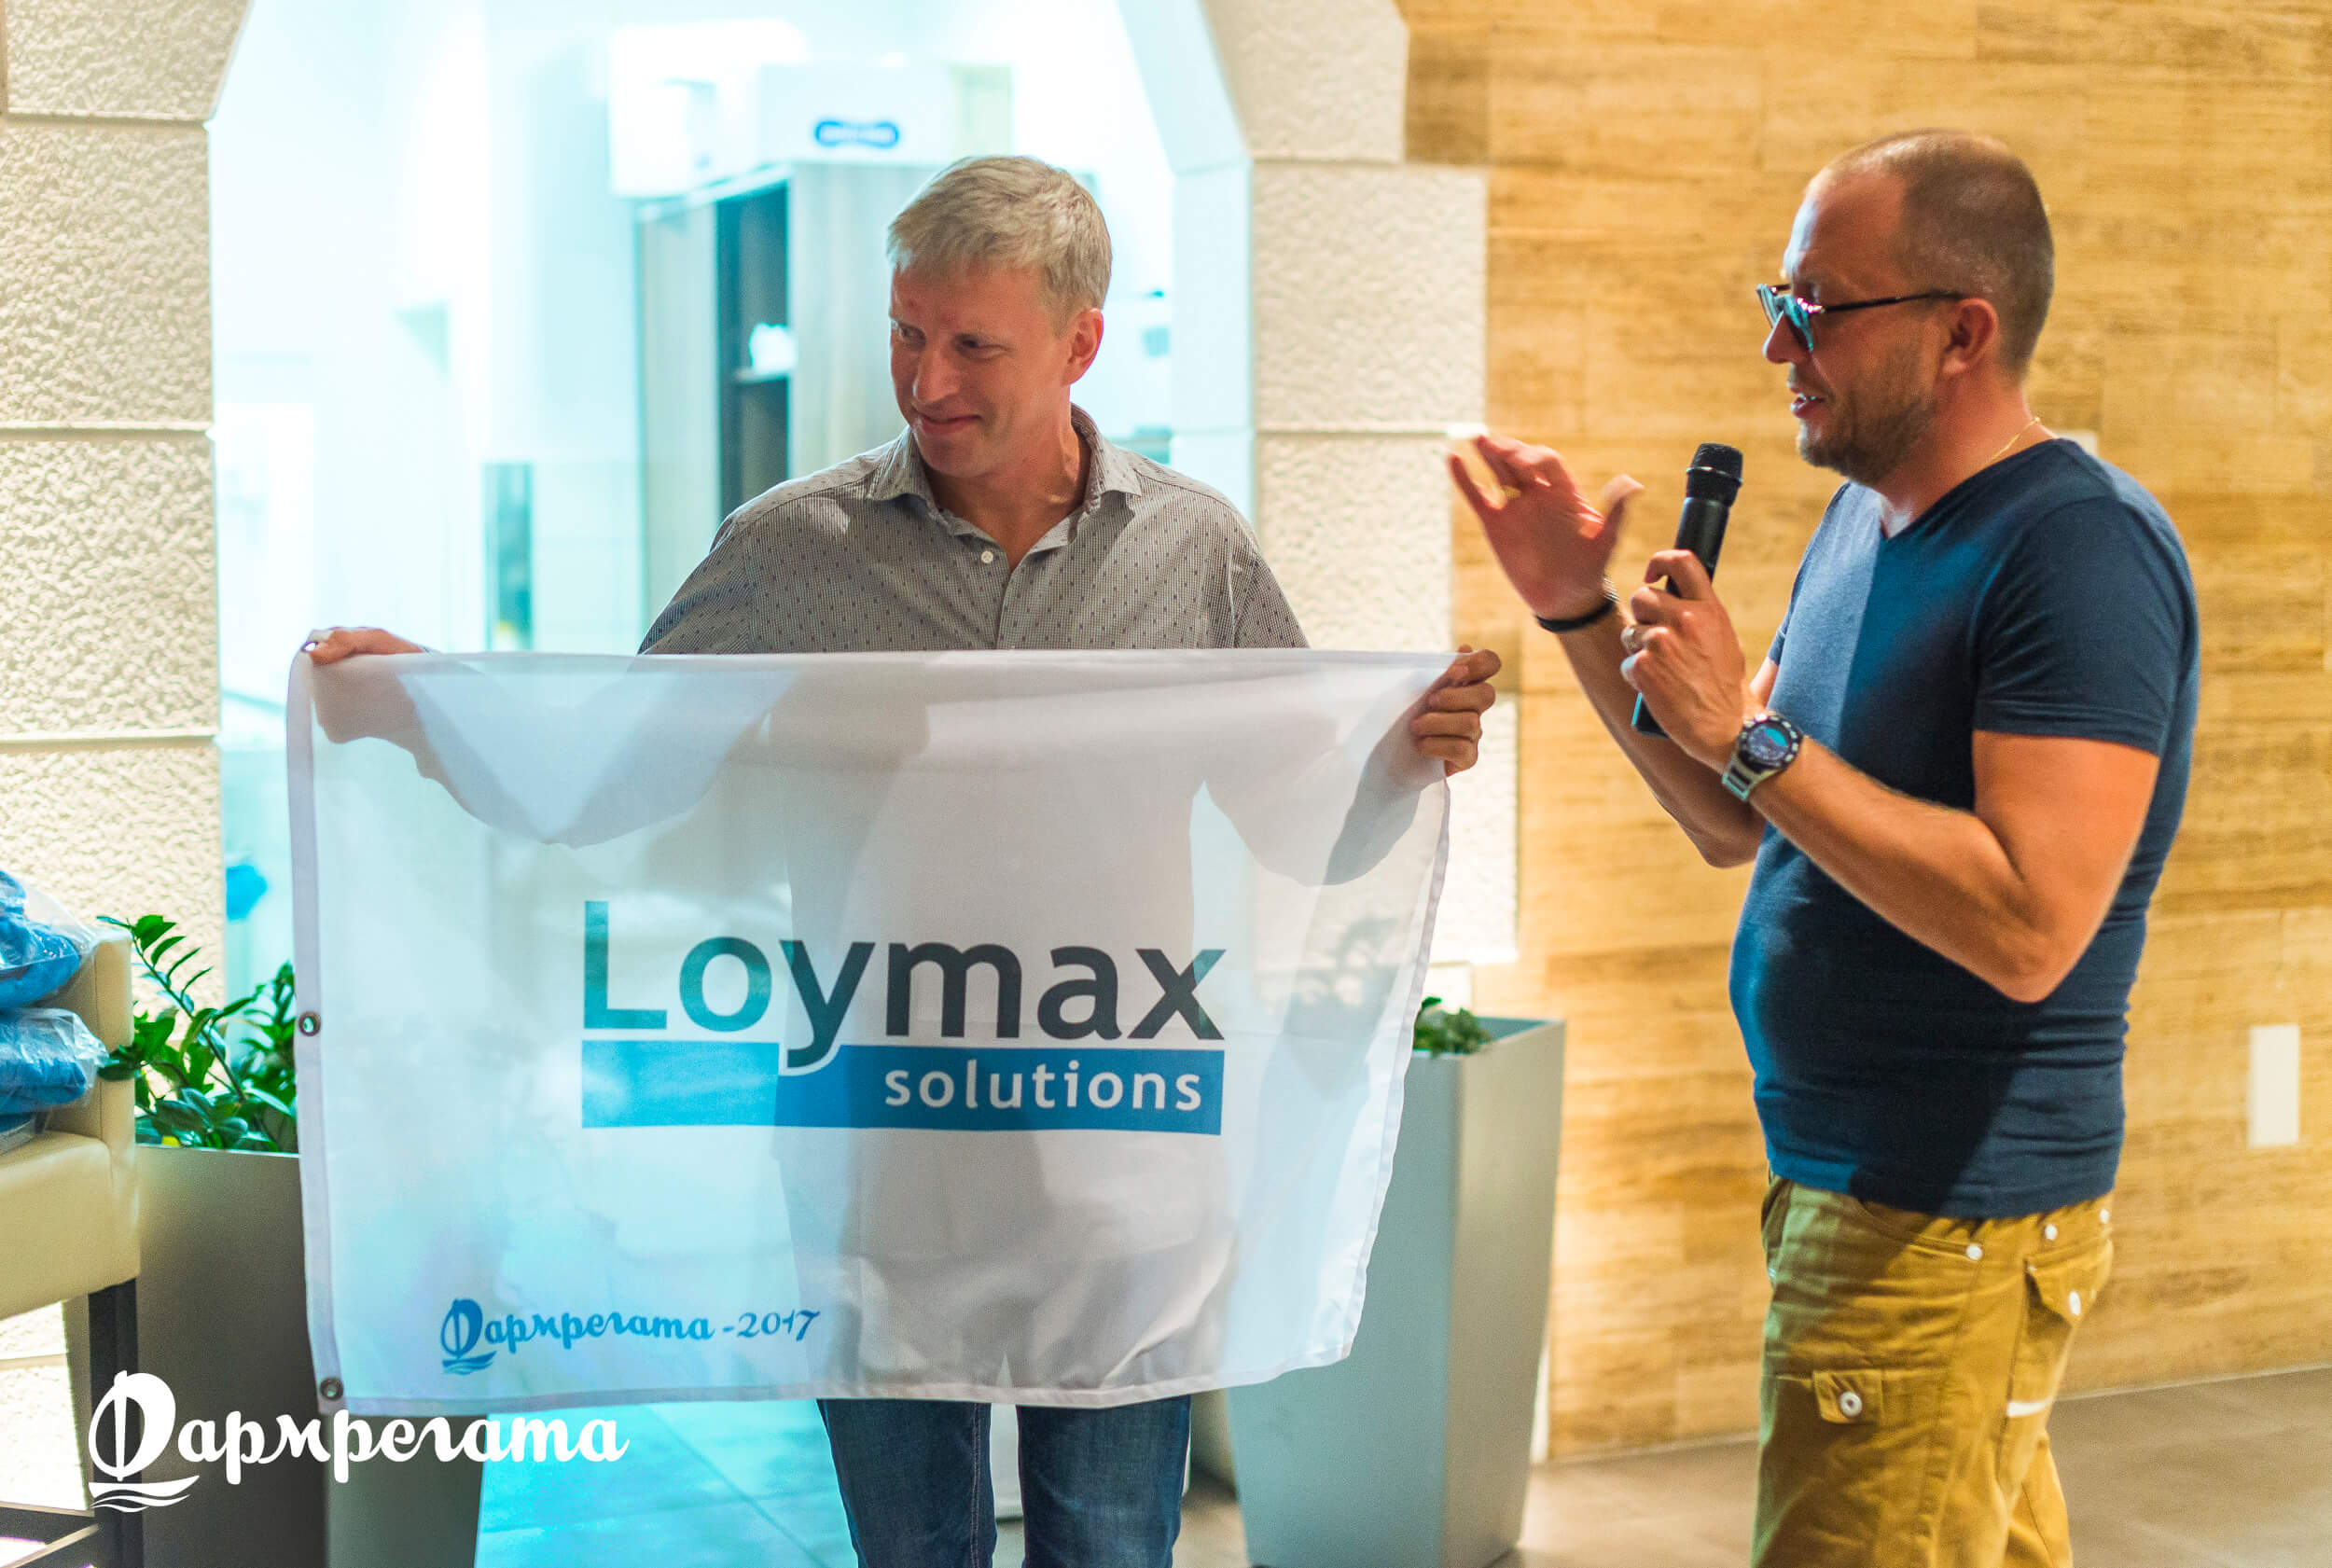 Флаг Loymax solutions - ДСМ групп Фармрегата 2017 - DSM Group Pharmregata 2017